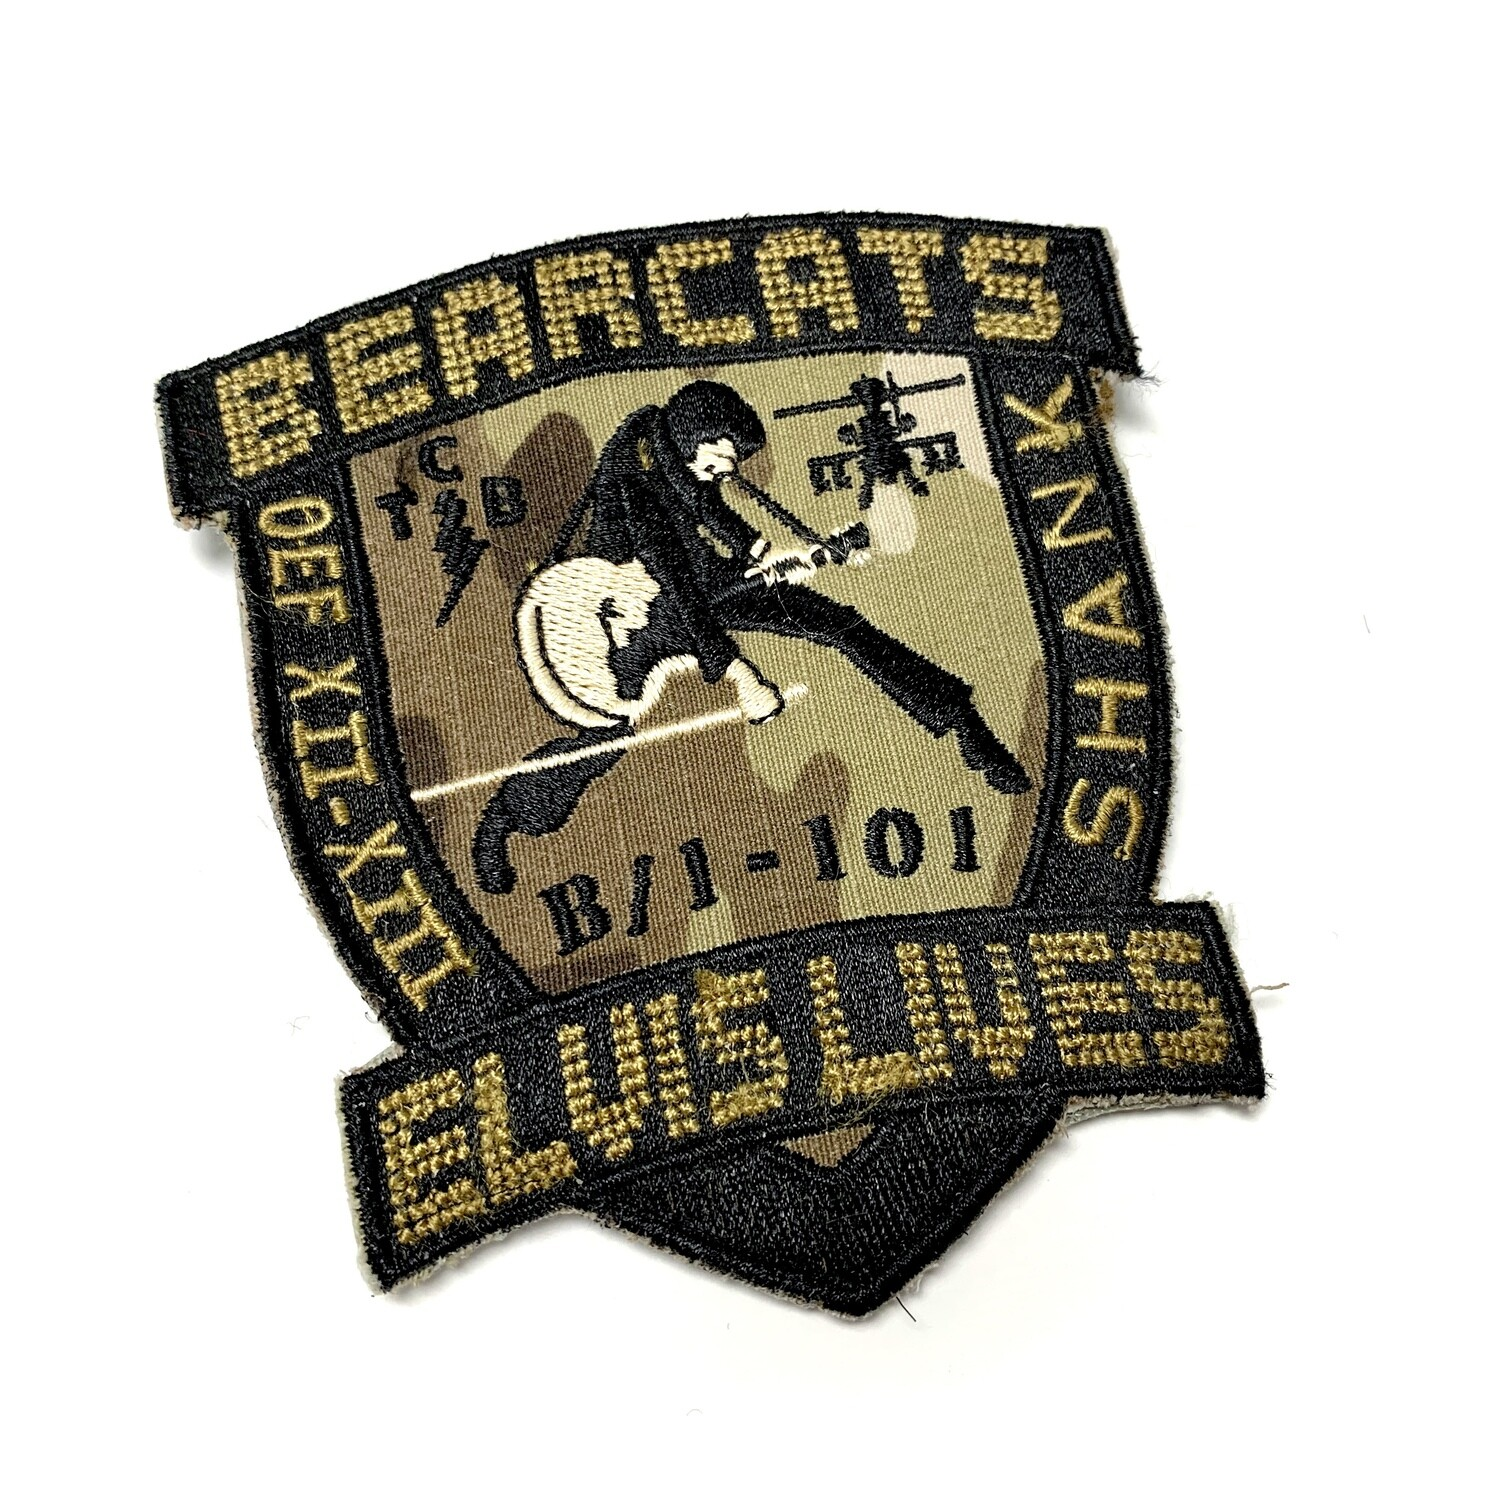 "B Co 1-101 ""Bearcats"" OEF XII-XIII Legacy Patch"